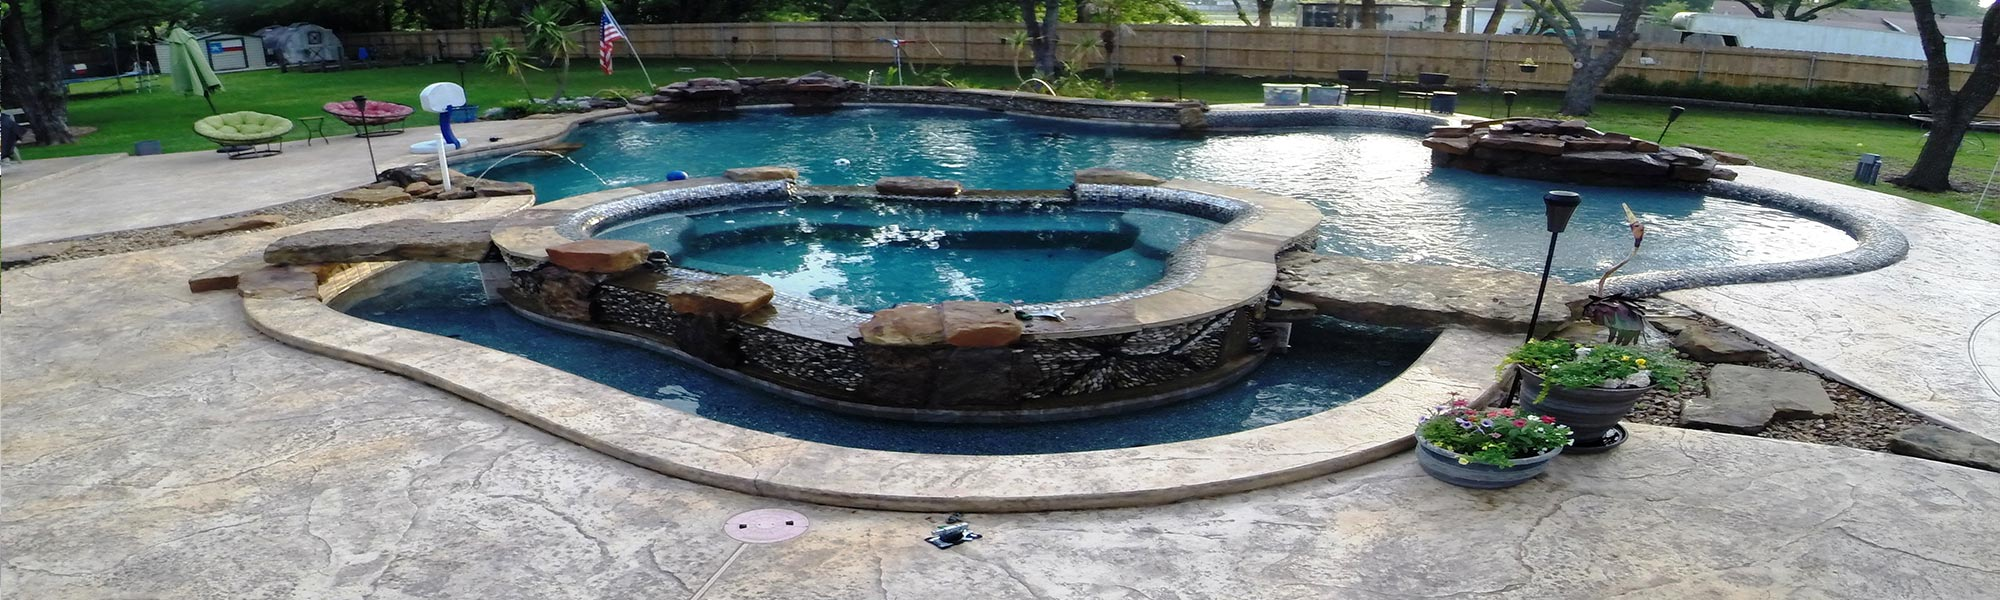 Pool n Spa Artistry of Houston Texas